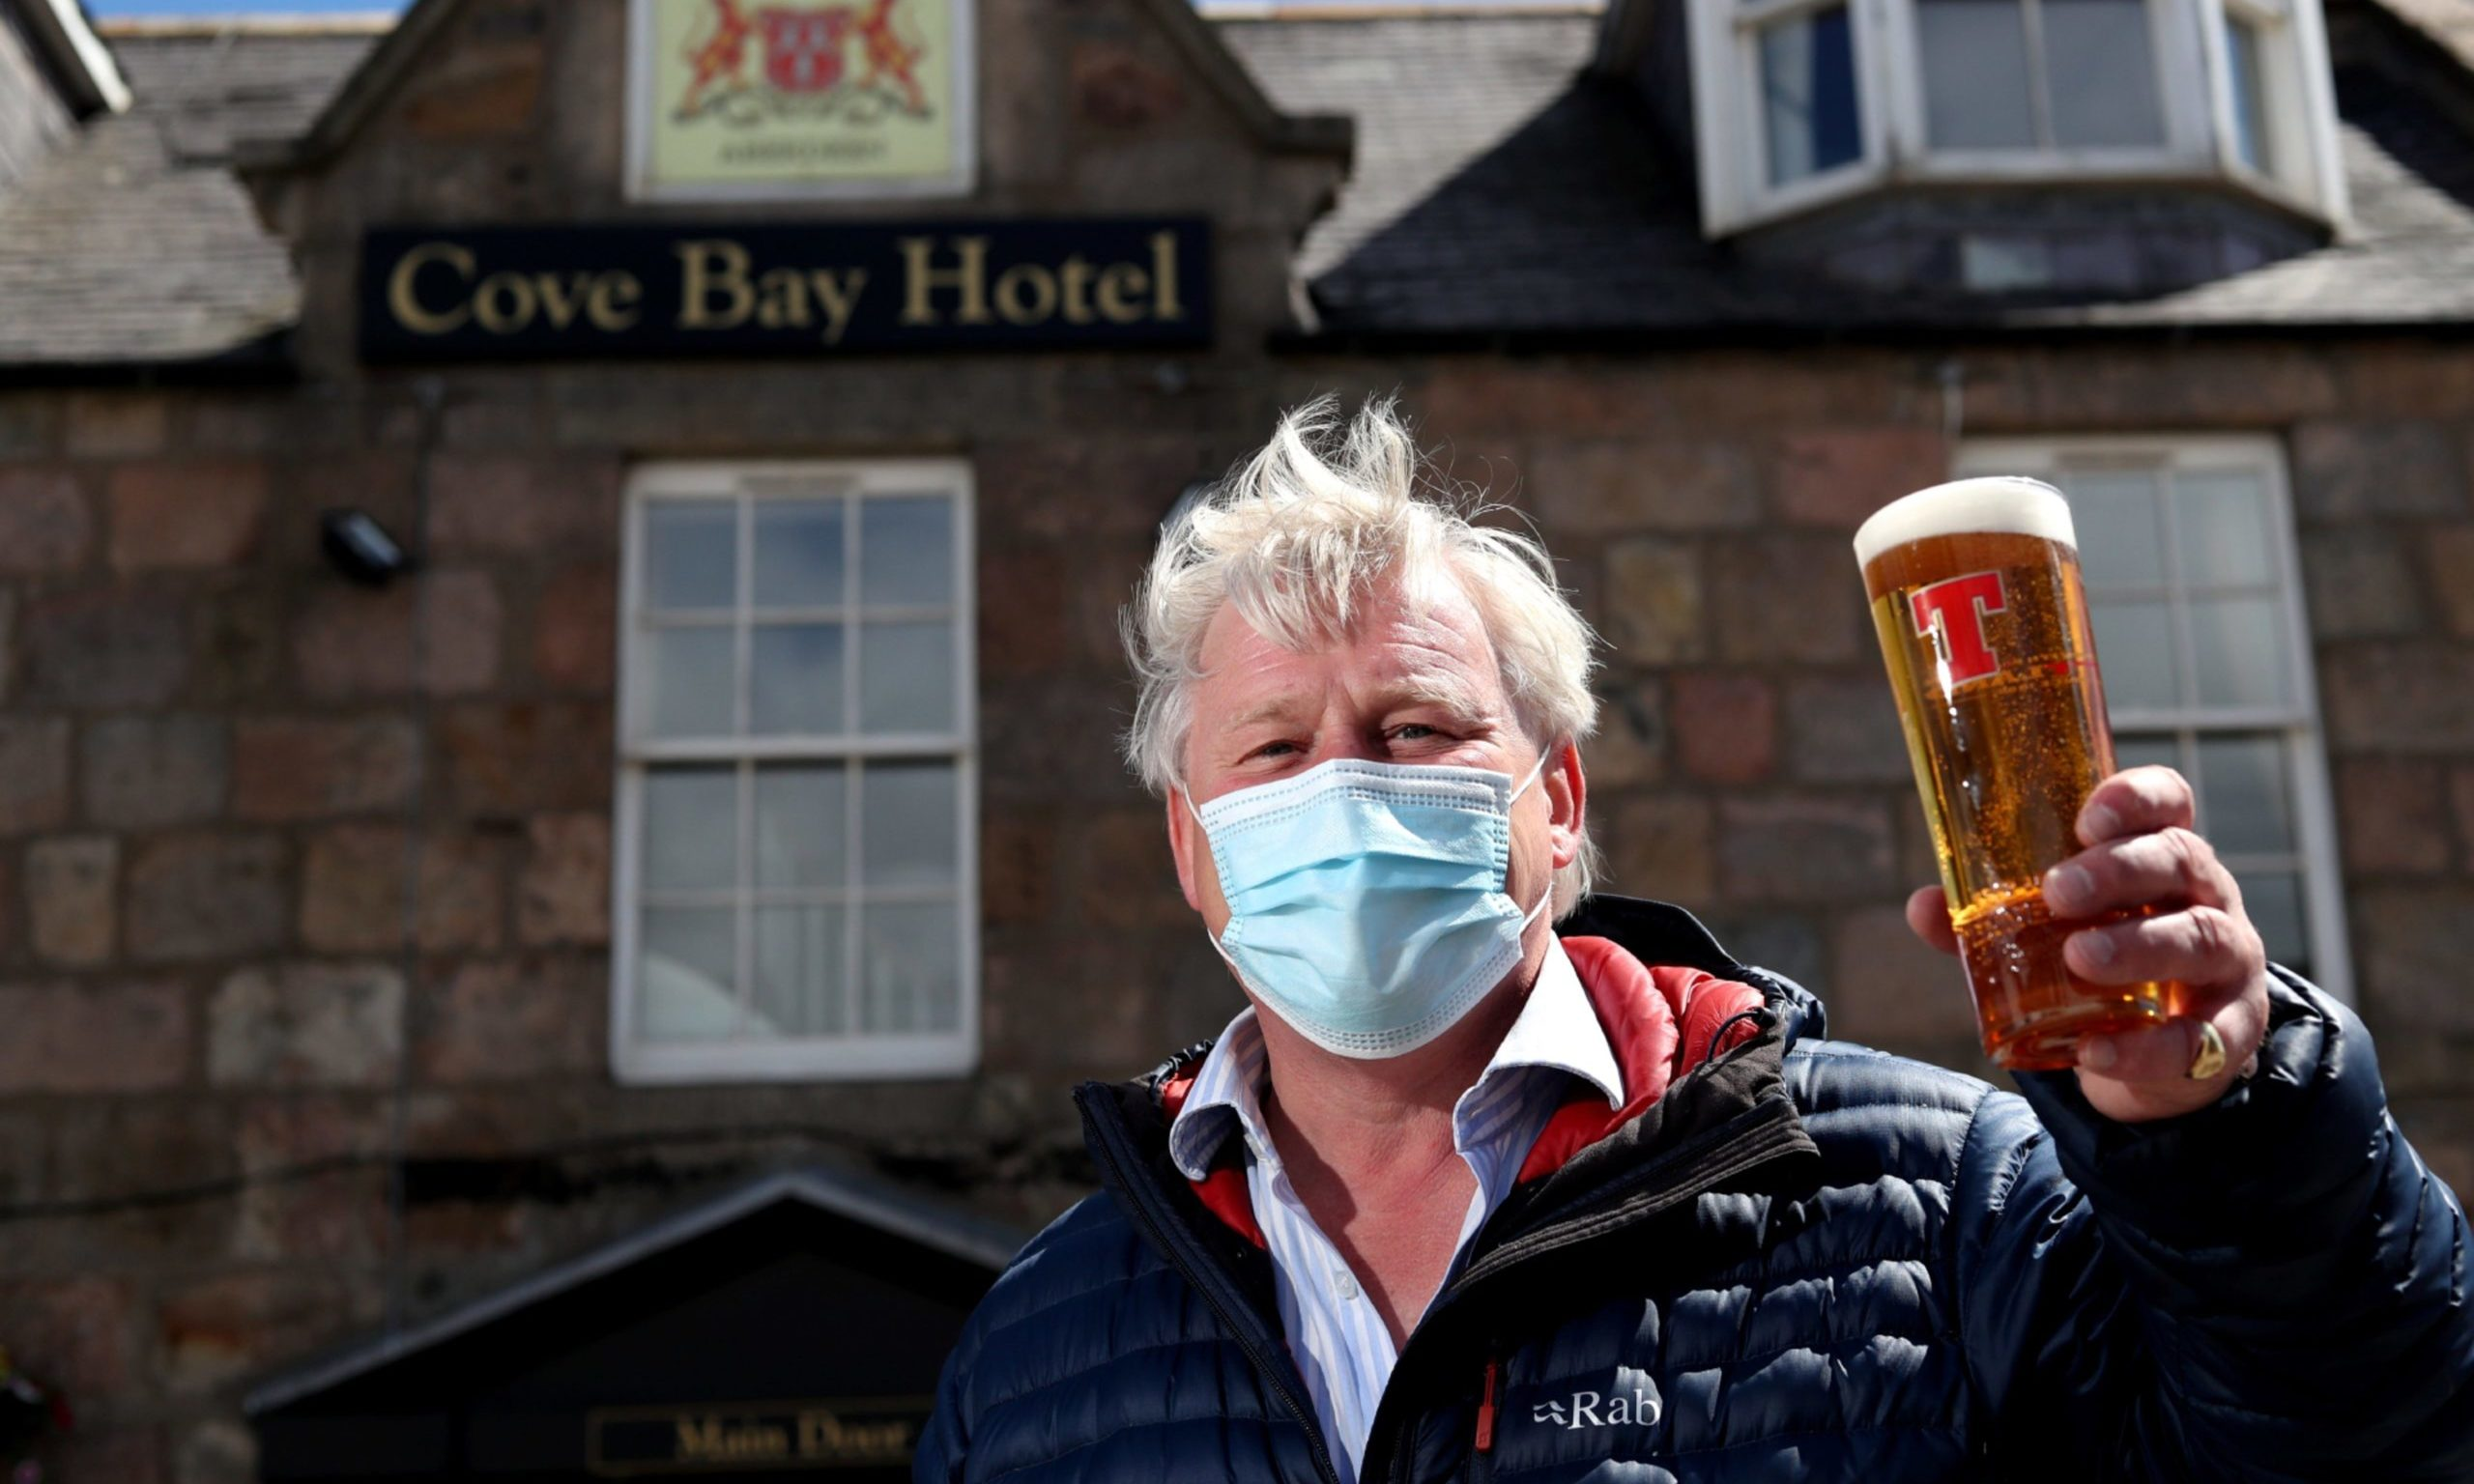 Guy Craig, Owner of the Cove Bay Hotel welcomes people to his new beer garden